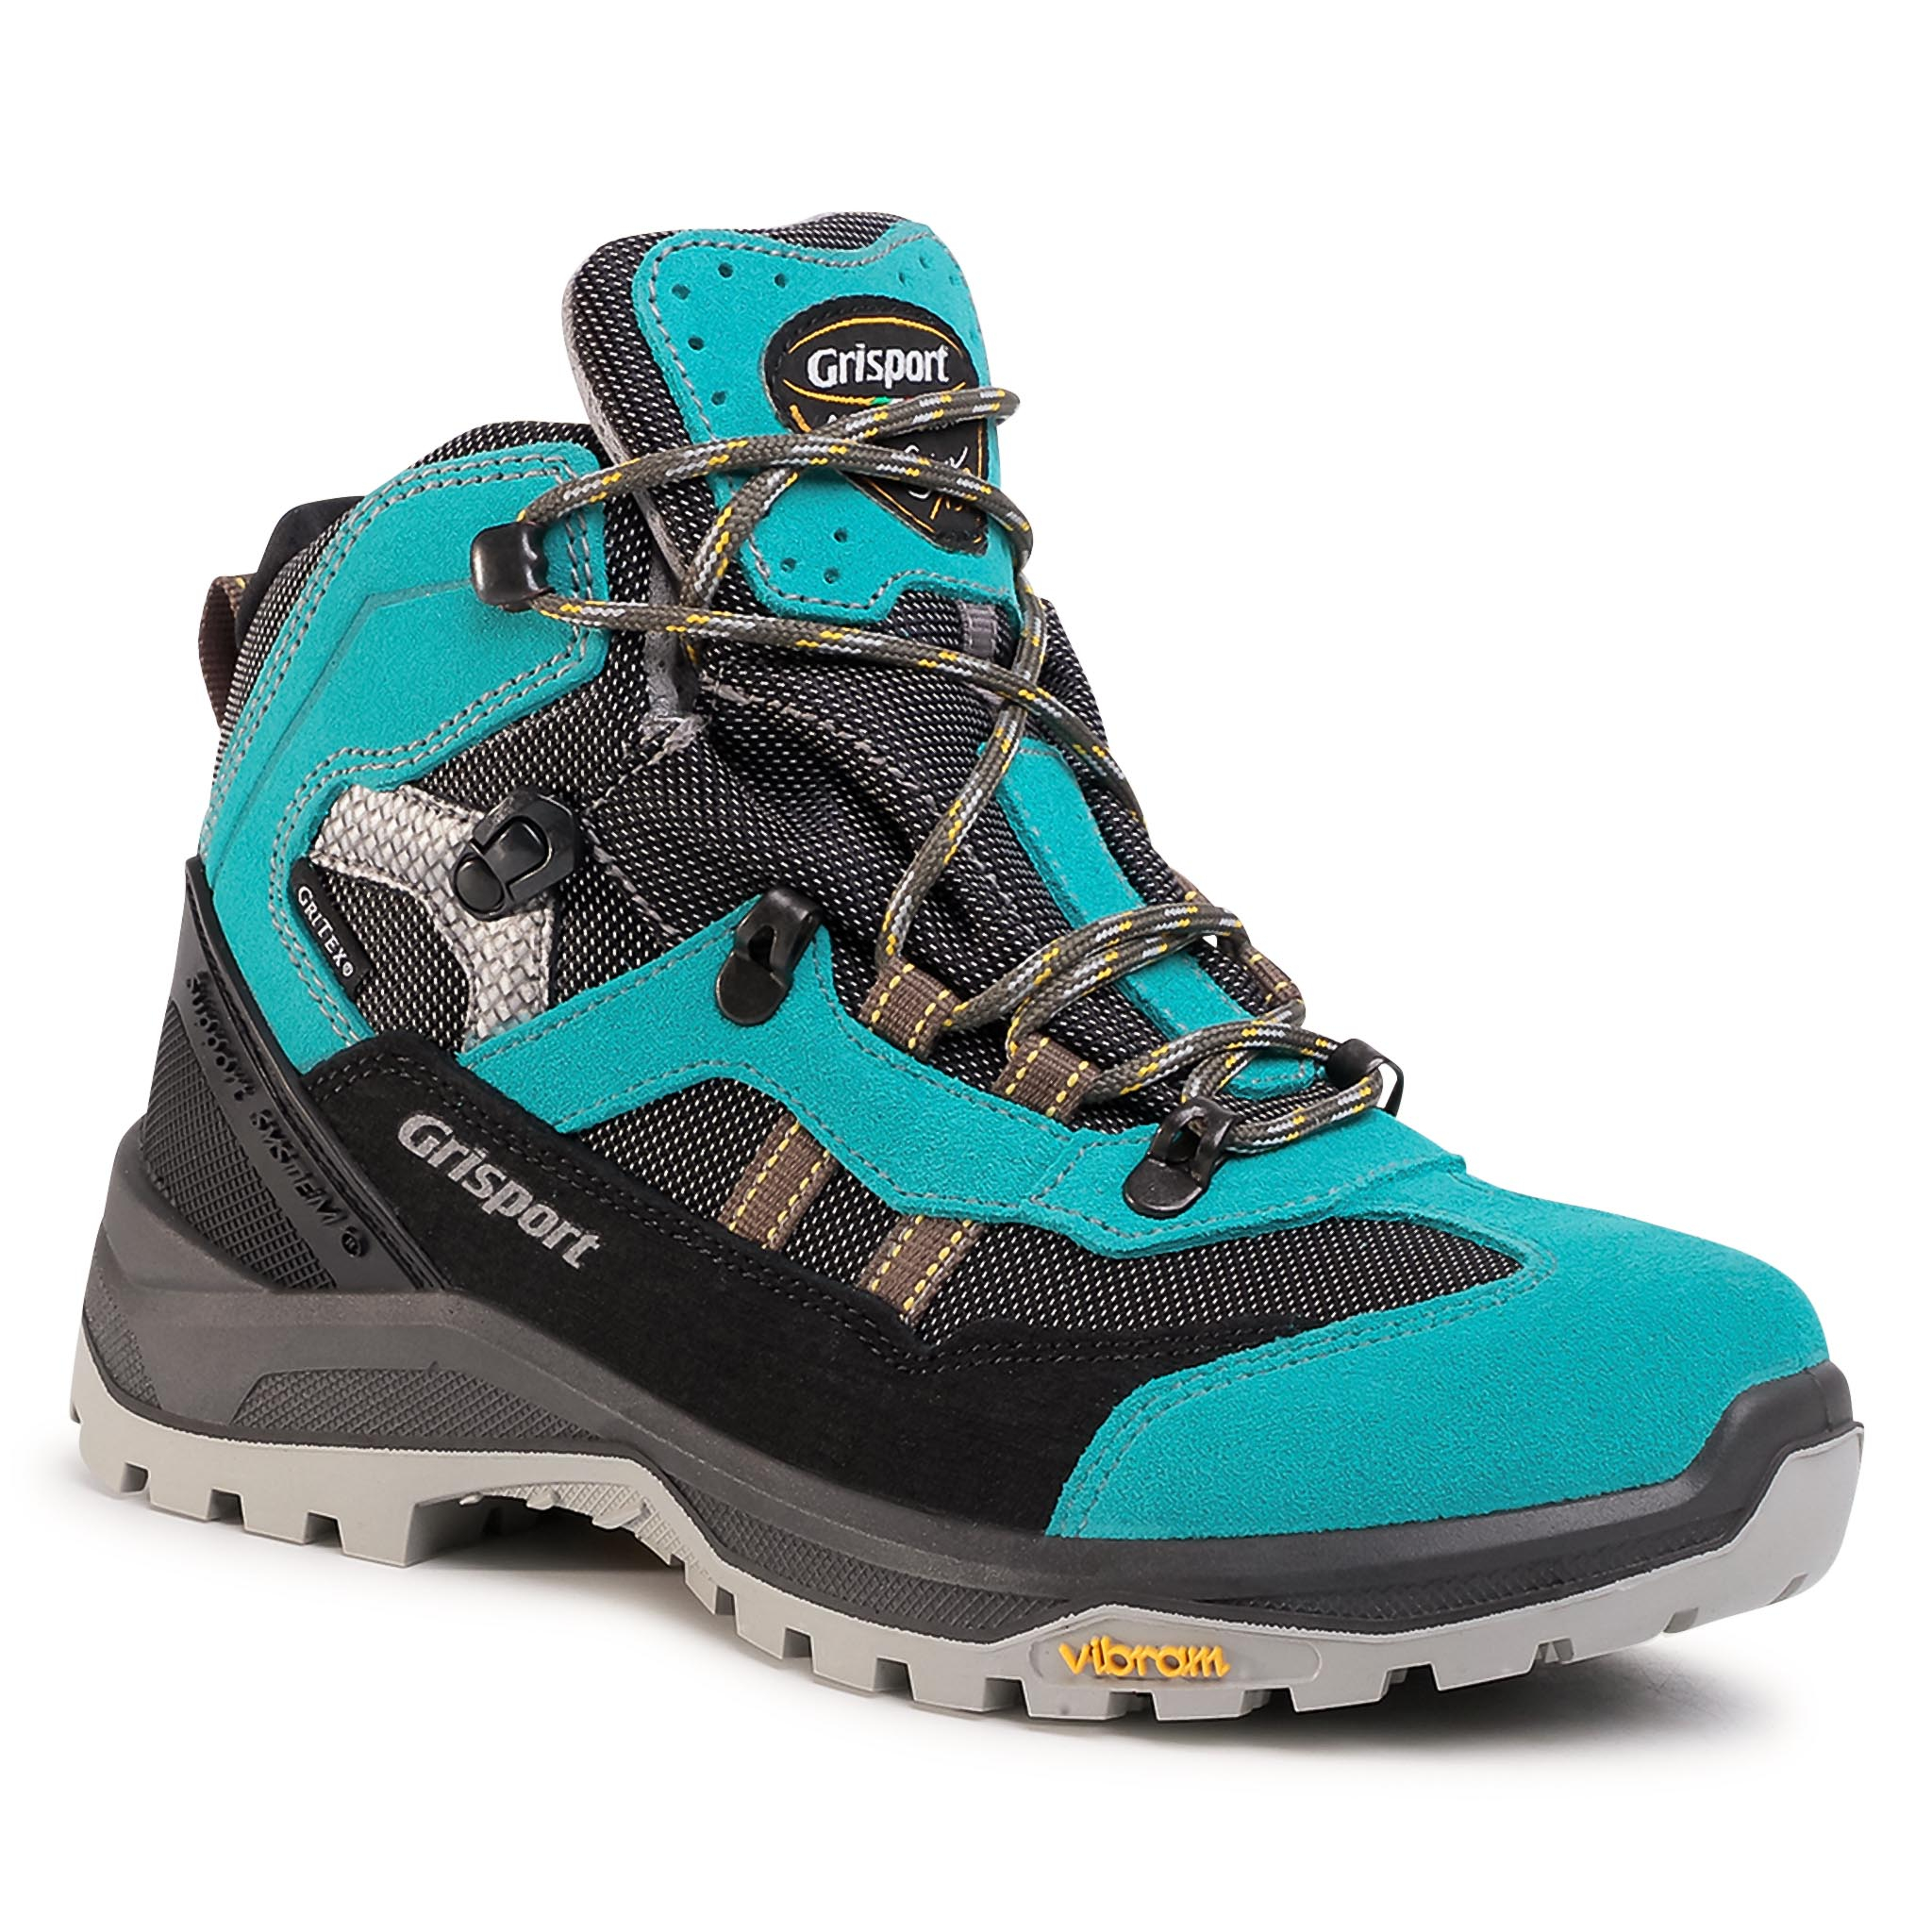 Trekkings Grisport - 14407s11g Turchese imagine epantofi.ro 2021